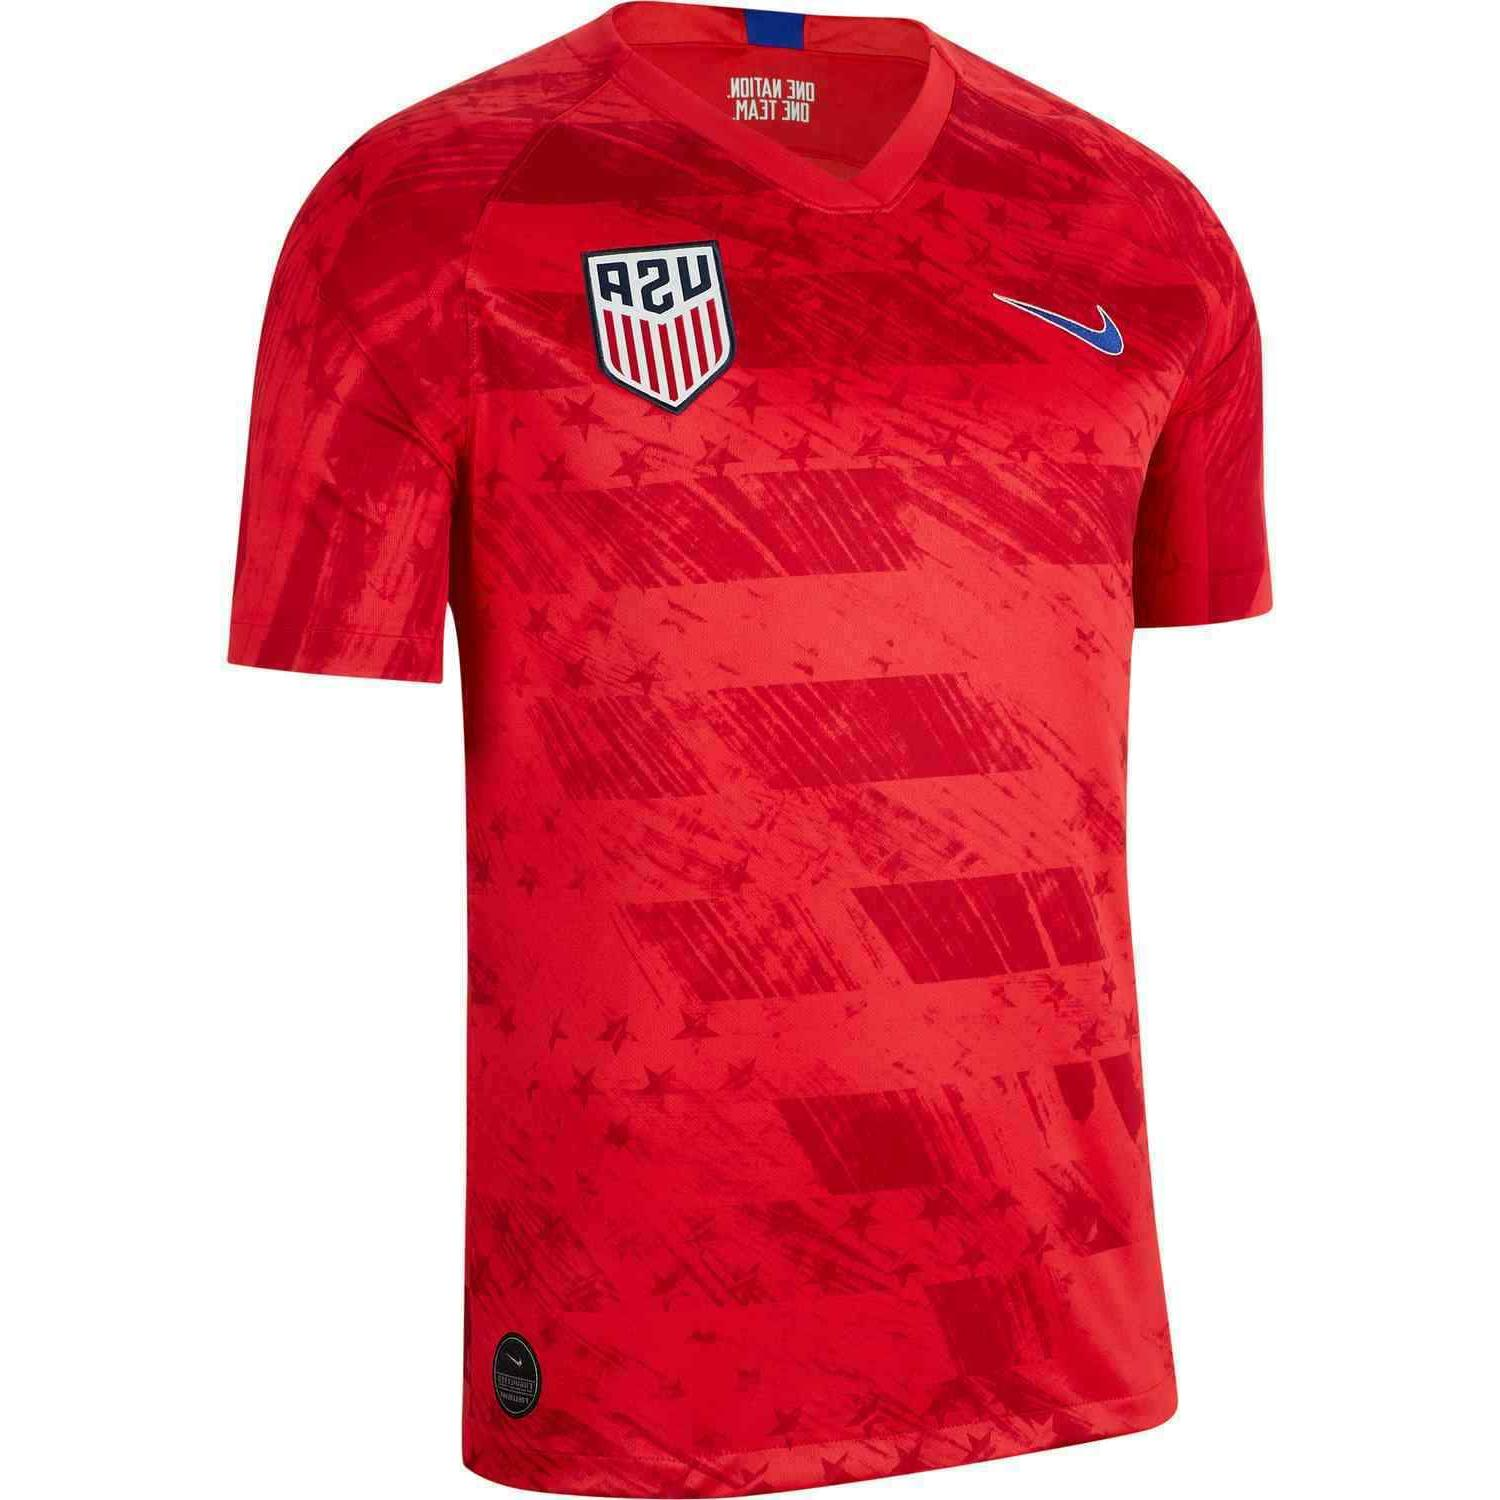 USA AWAY New Gold Cup Copa USMNT Free